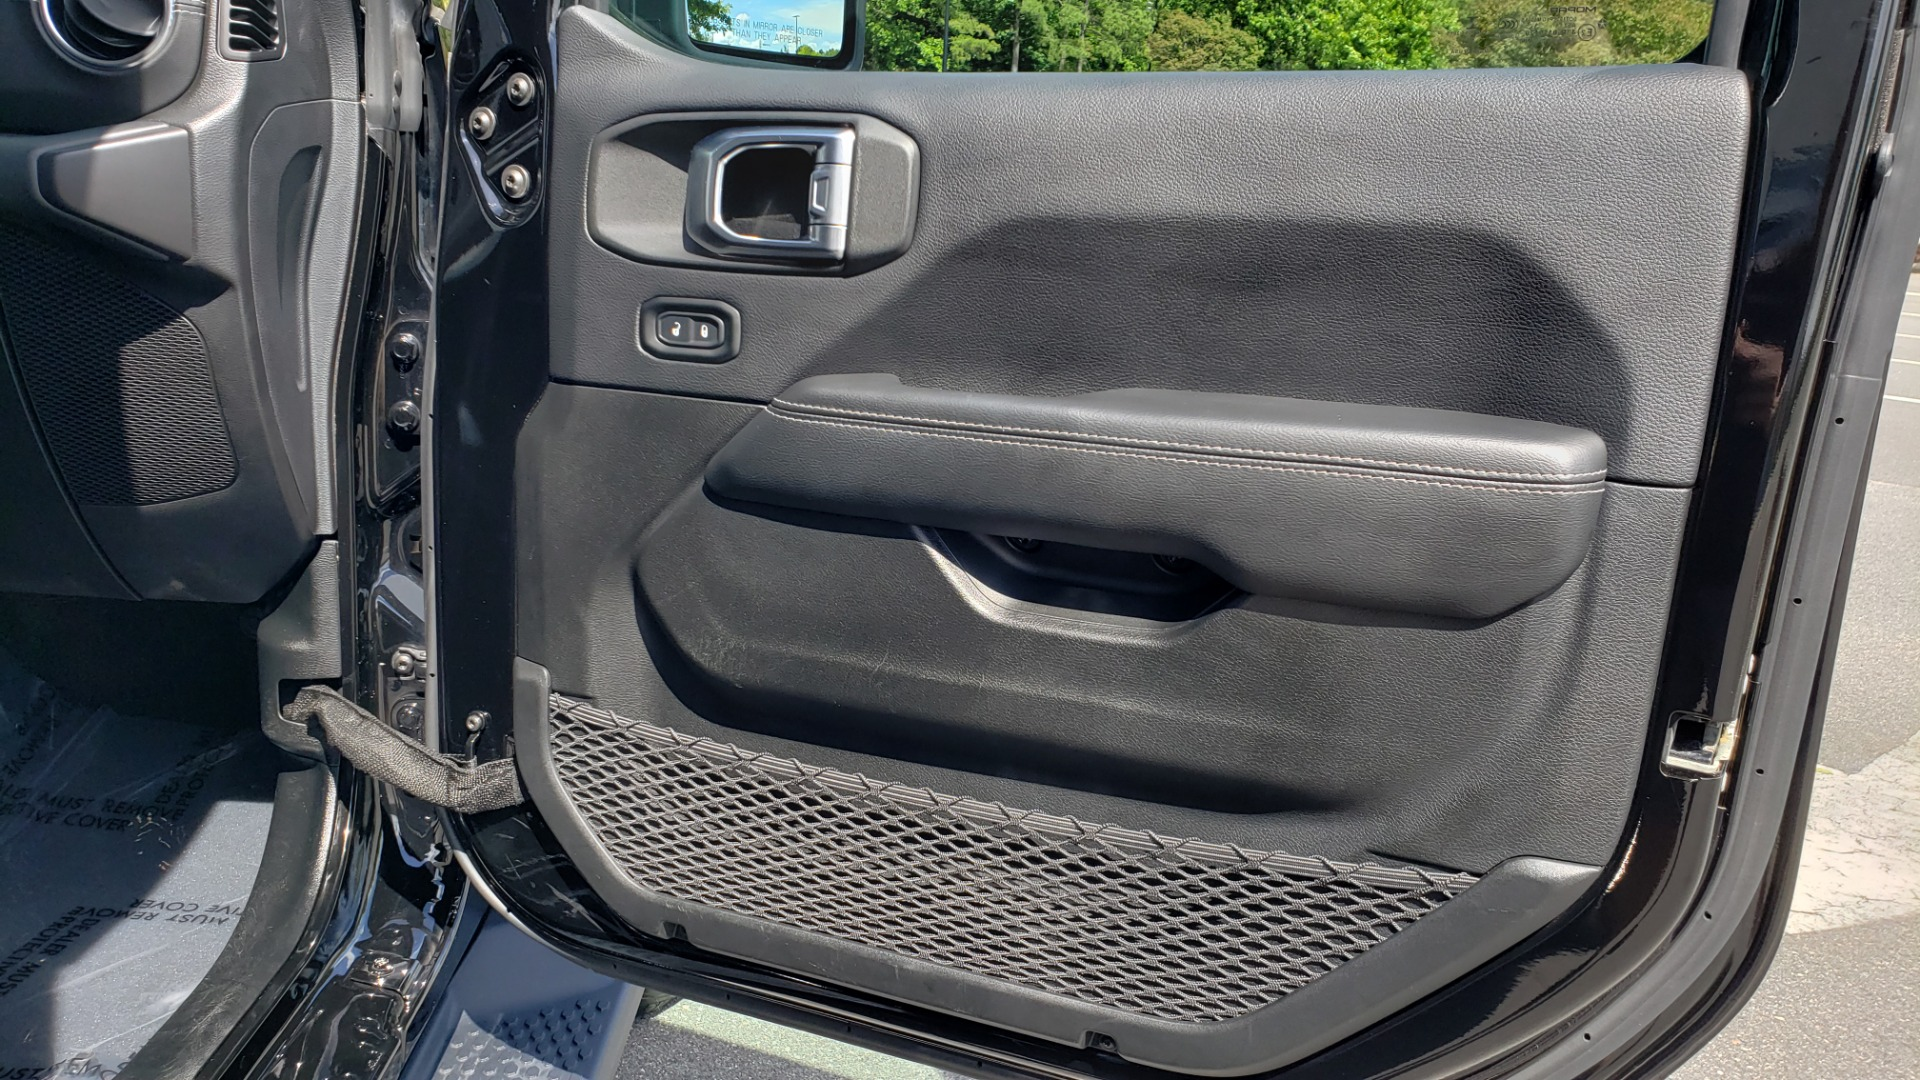 Used 2018 Jeep WRANGLER UNLIMITED SAHARA / 3.6L V6 / 6-SPD MAN / ALPINE / NAV / HTD STS / REARVIEW for sale $43,999 at Formula Imports in Charlotte NC 28227 79